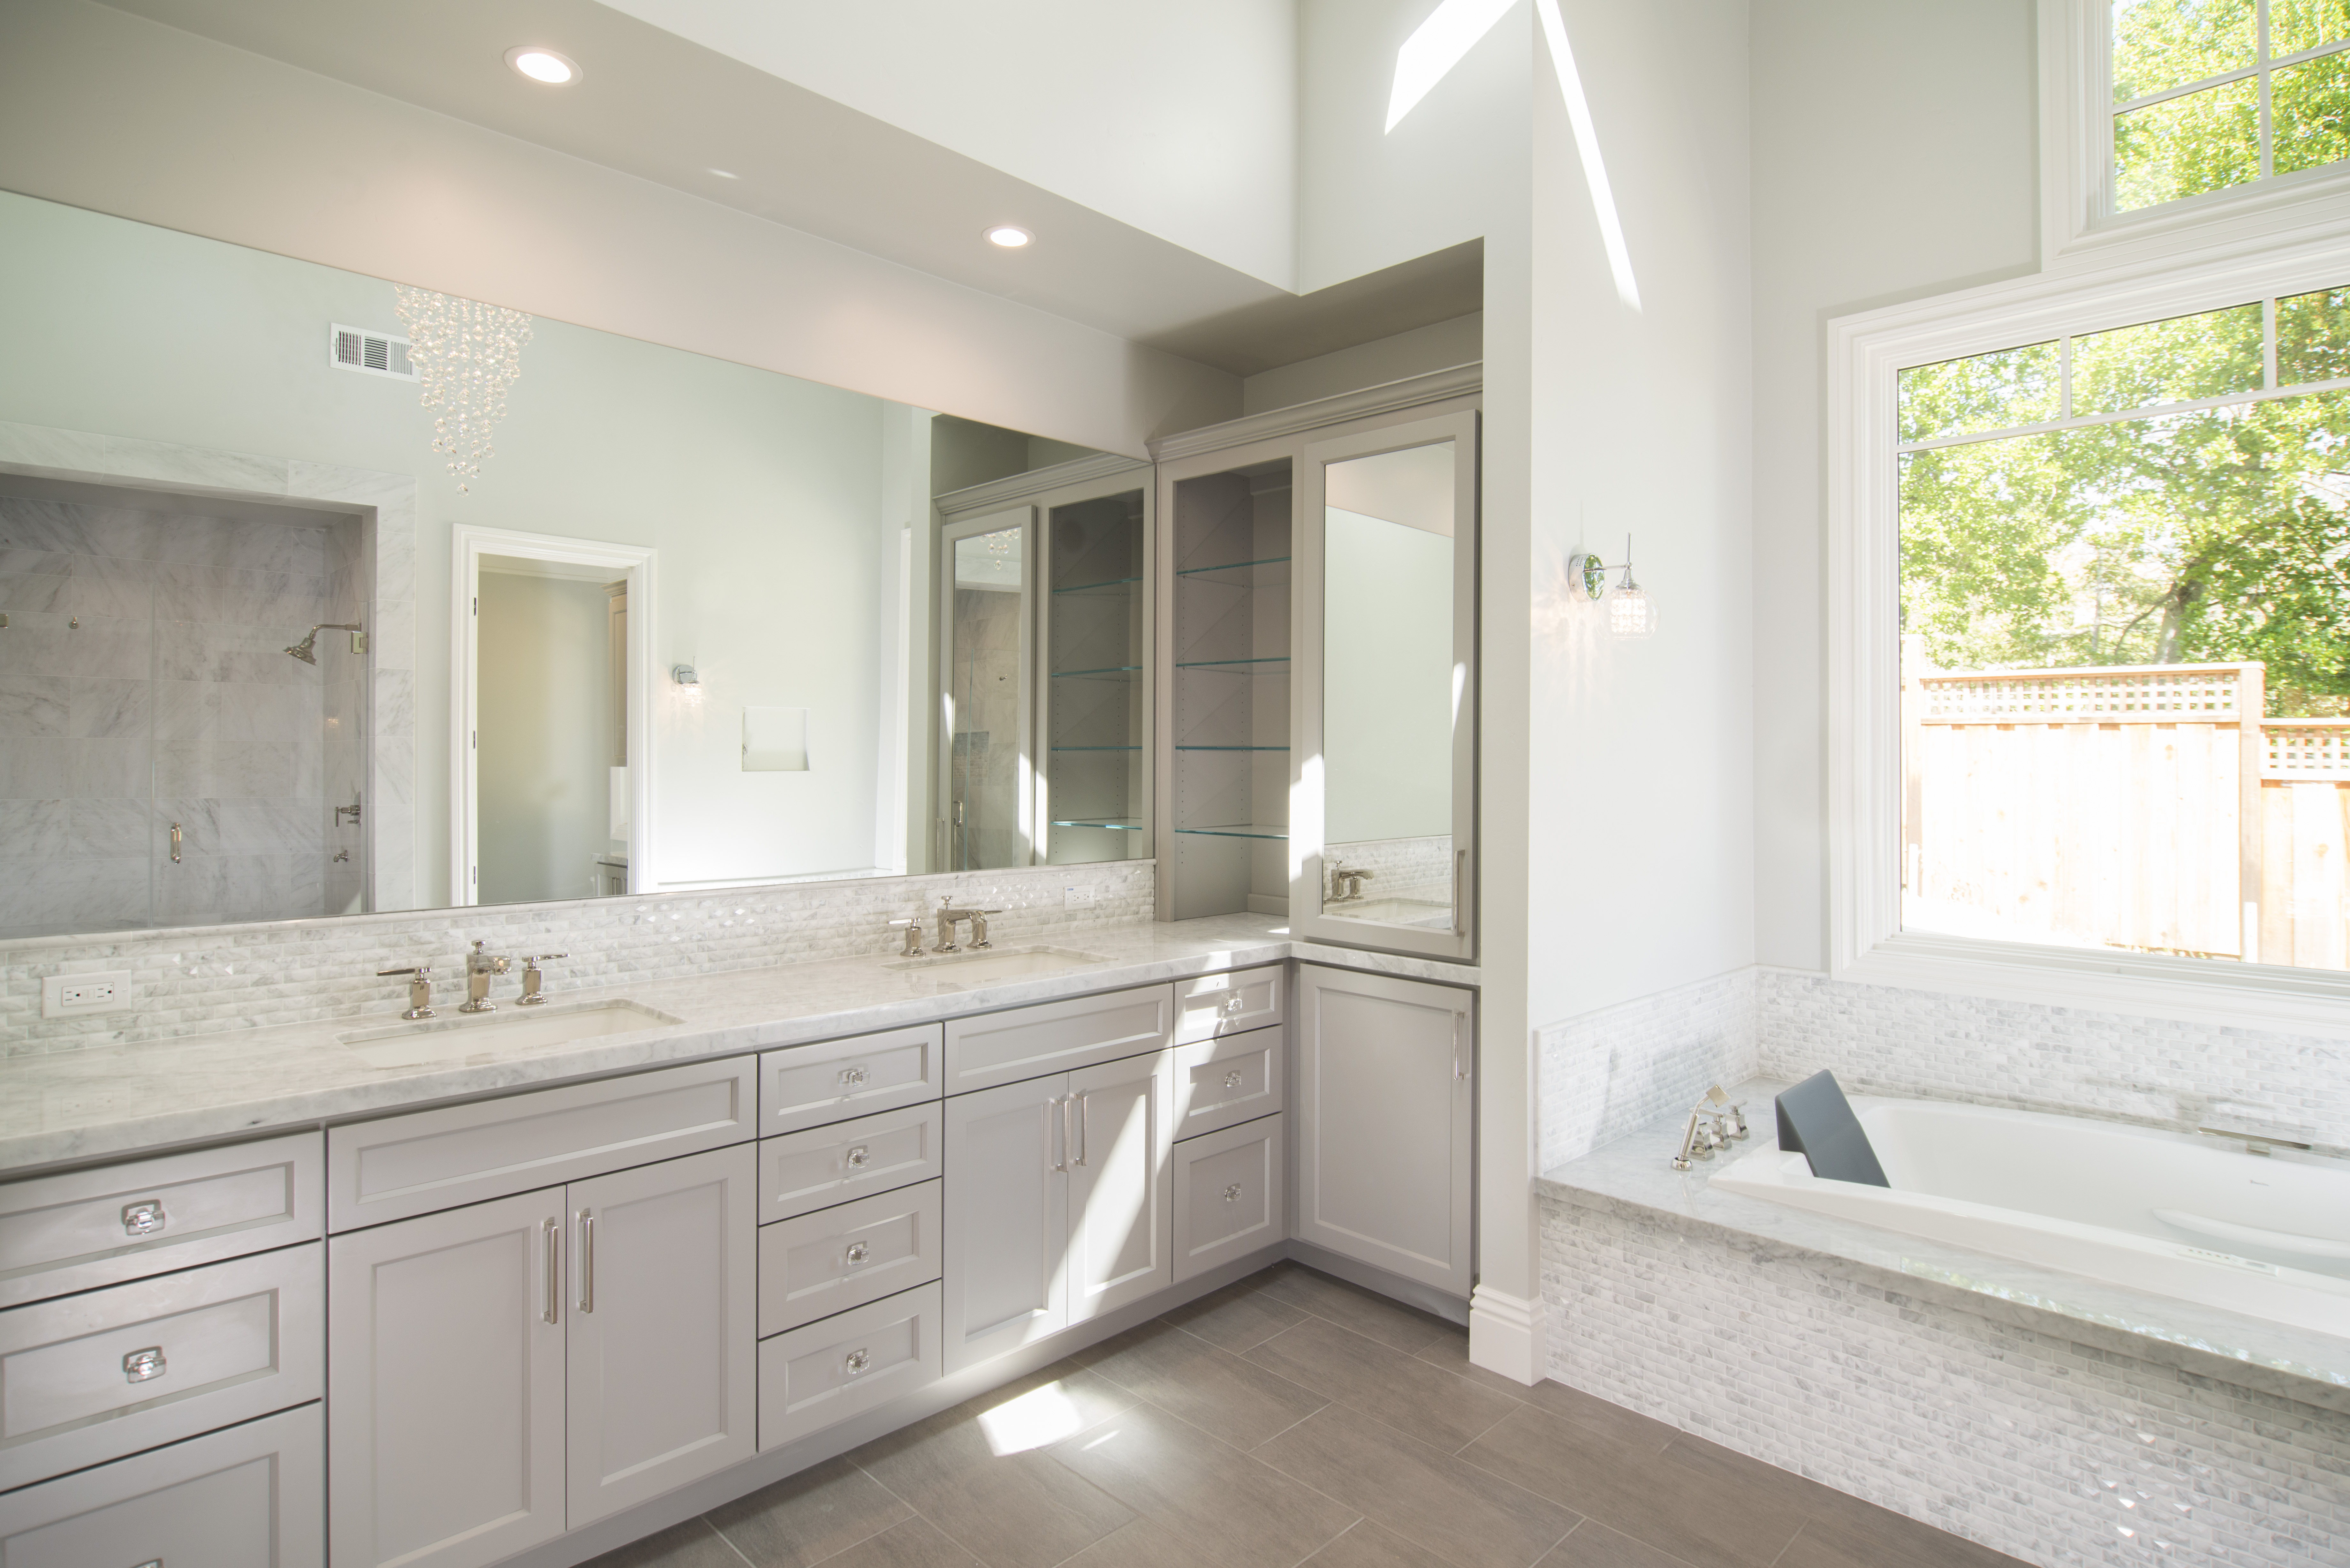 Clean Transitional Master Bathroom with Built-In Glass Shelves